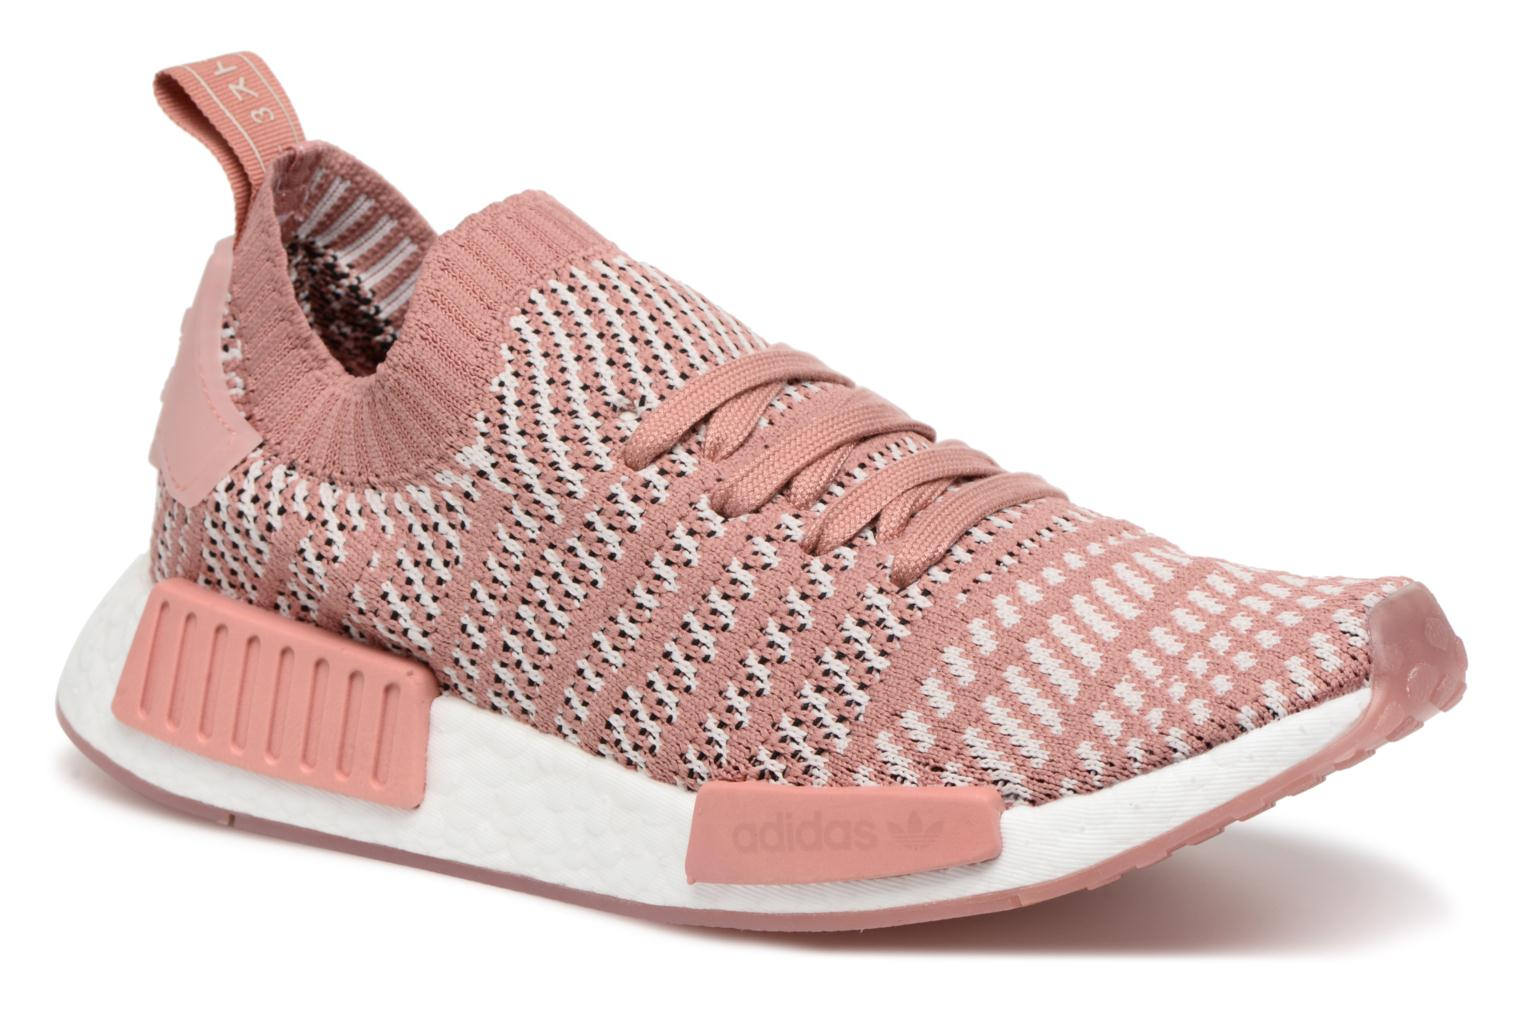 Adidas Originals Nmd_R1 Stlt Pk W (Rose) - Baskets chez Sarenza (322991)